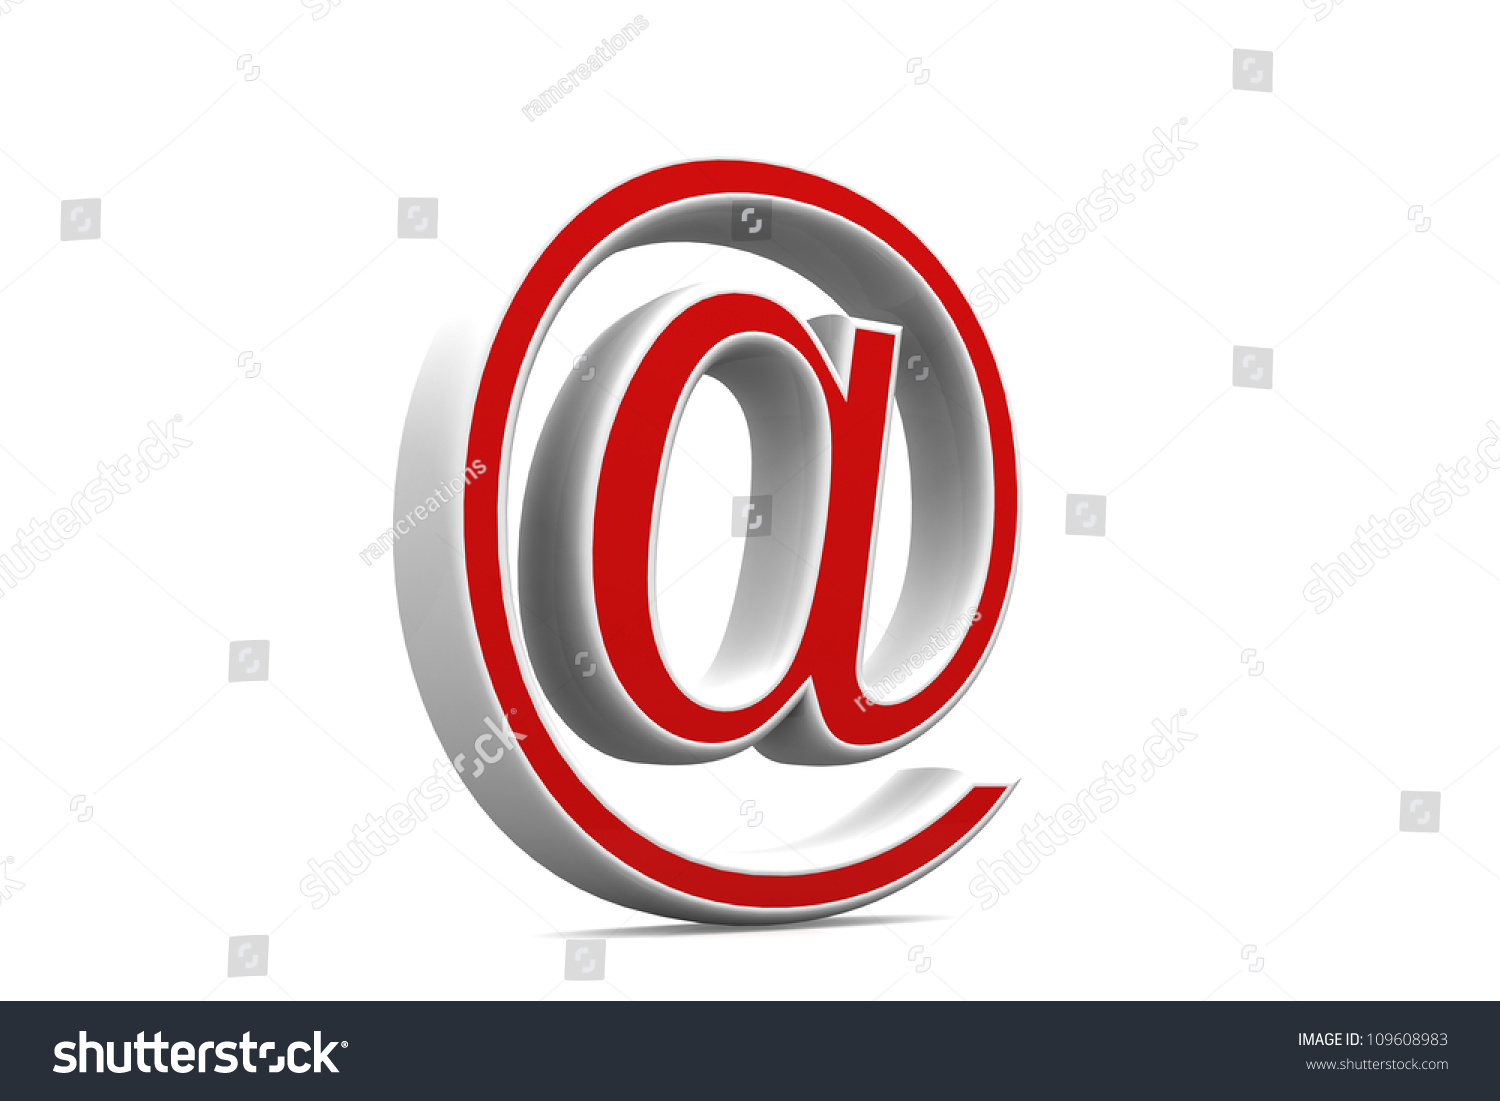 Email internet icon stock illustration 109608983 shutterstock e mail internet icon biocorpaavc